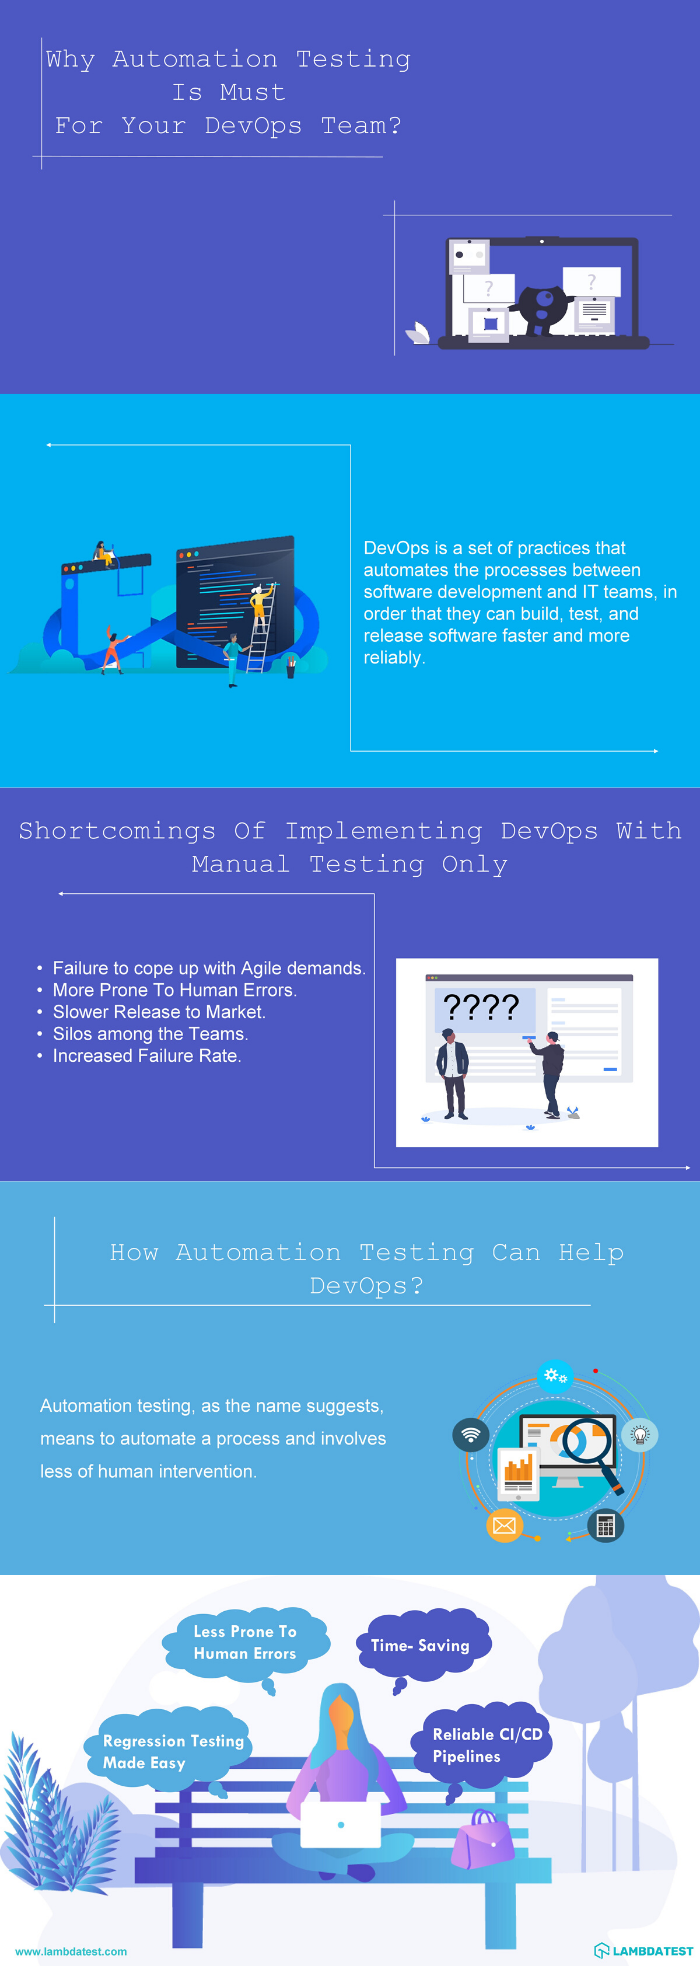 Automation testing for DevOps